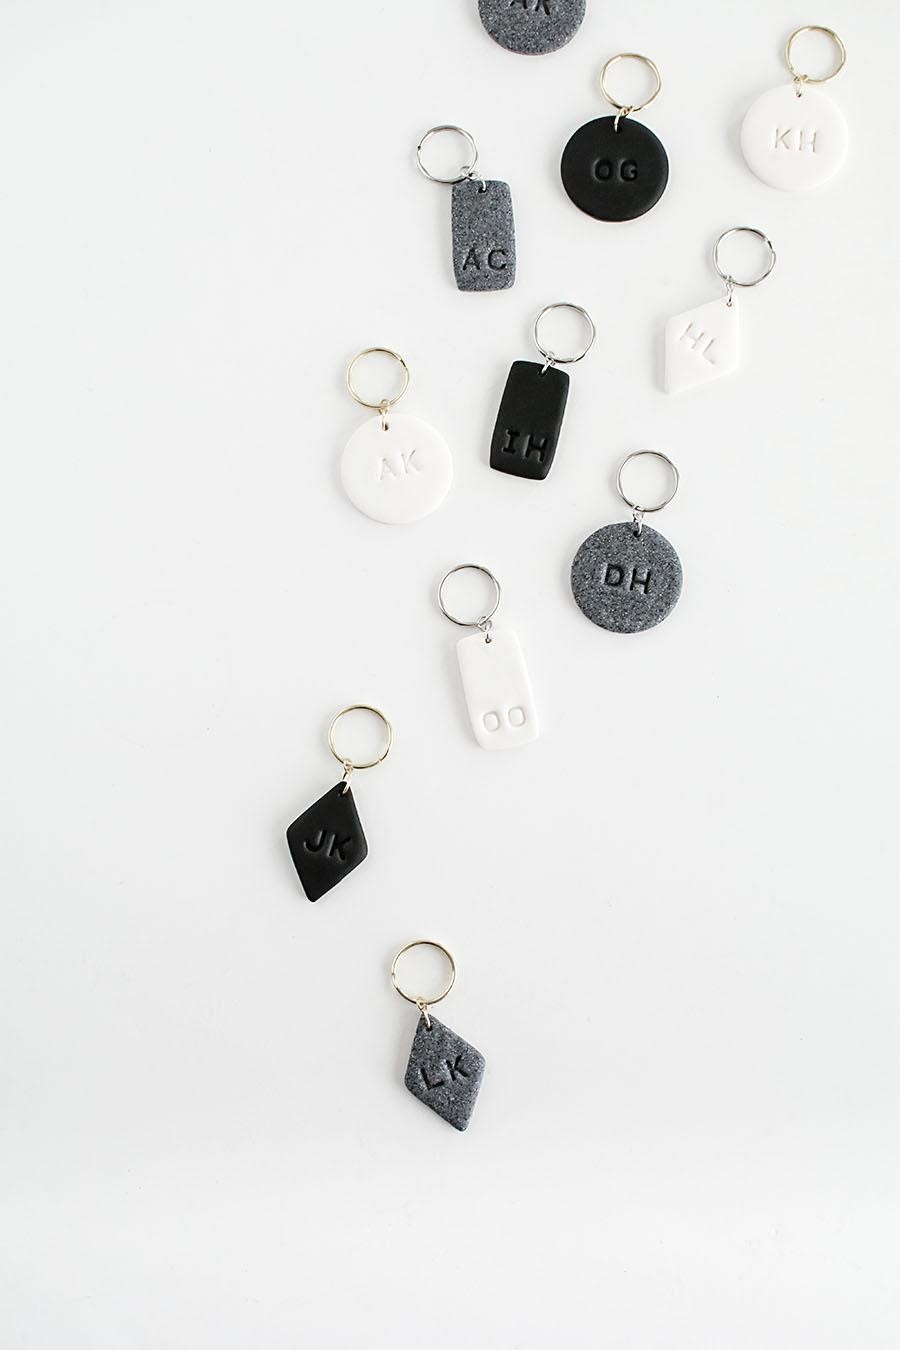 DIY Mother's Day Gifts: DIY Monogram Key Chains